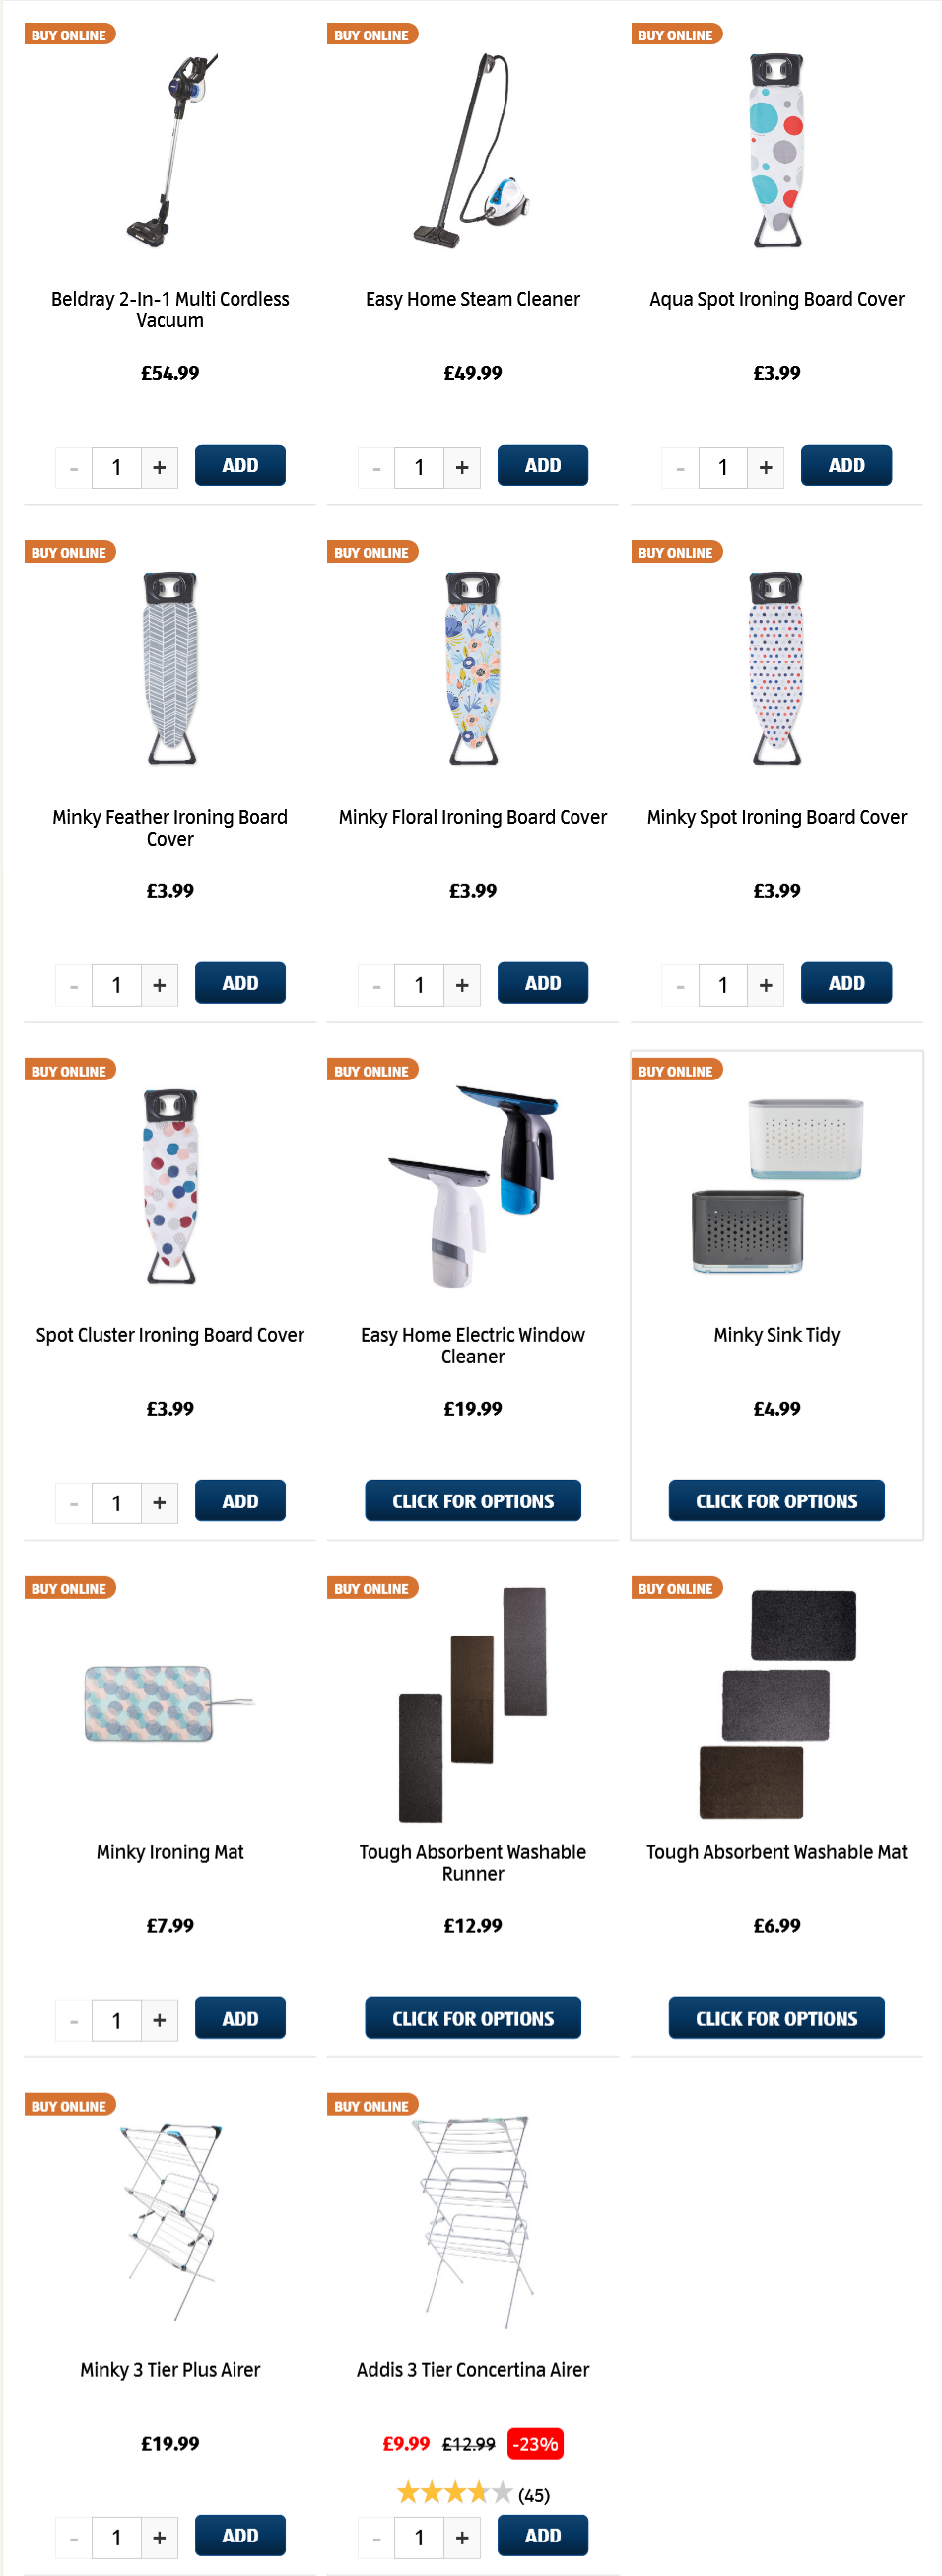 ALDI Sunday Offers Laundry & Cleaning 14th March 2021